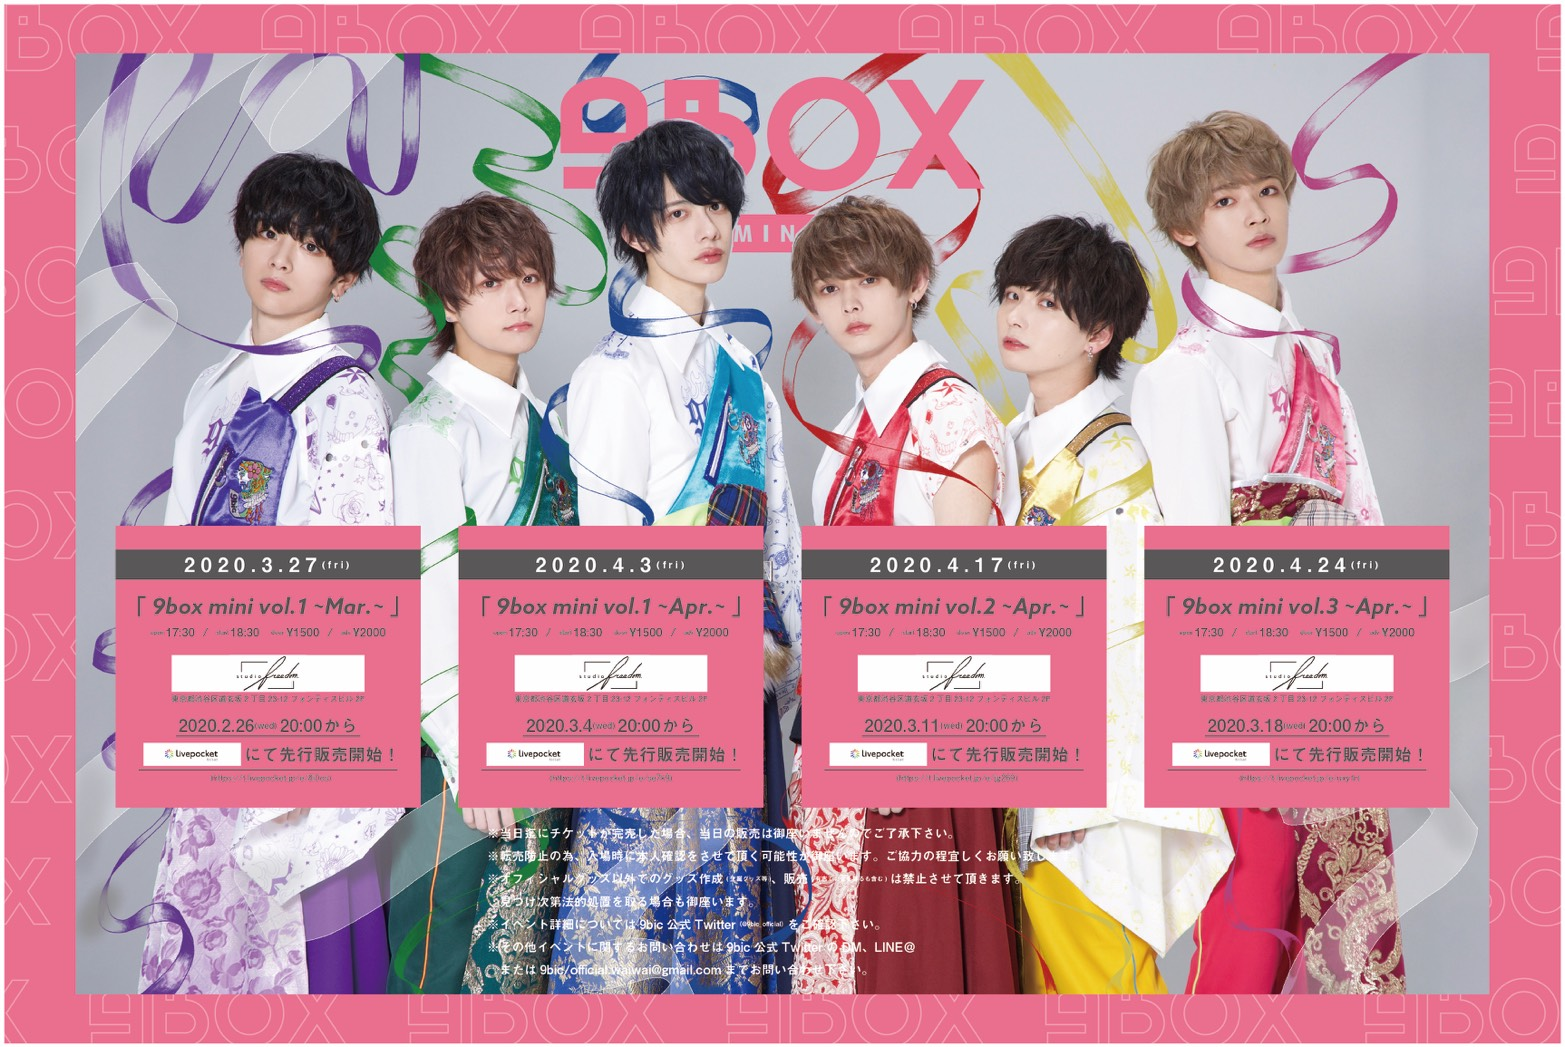 9box mini vol.3 ~Apr.~